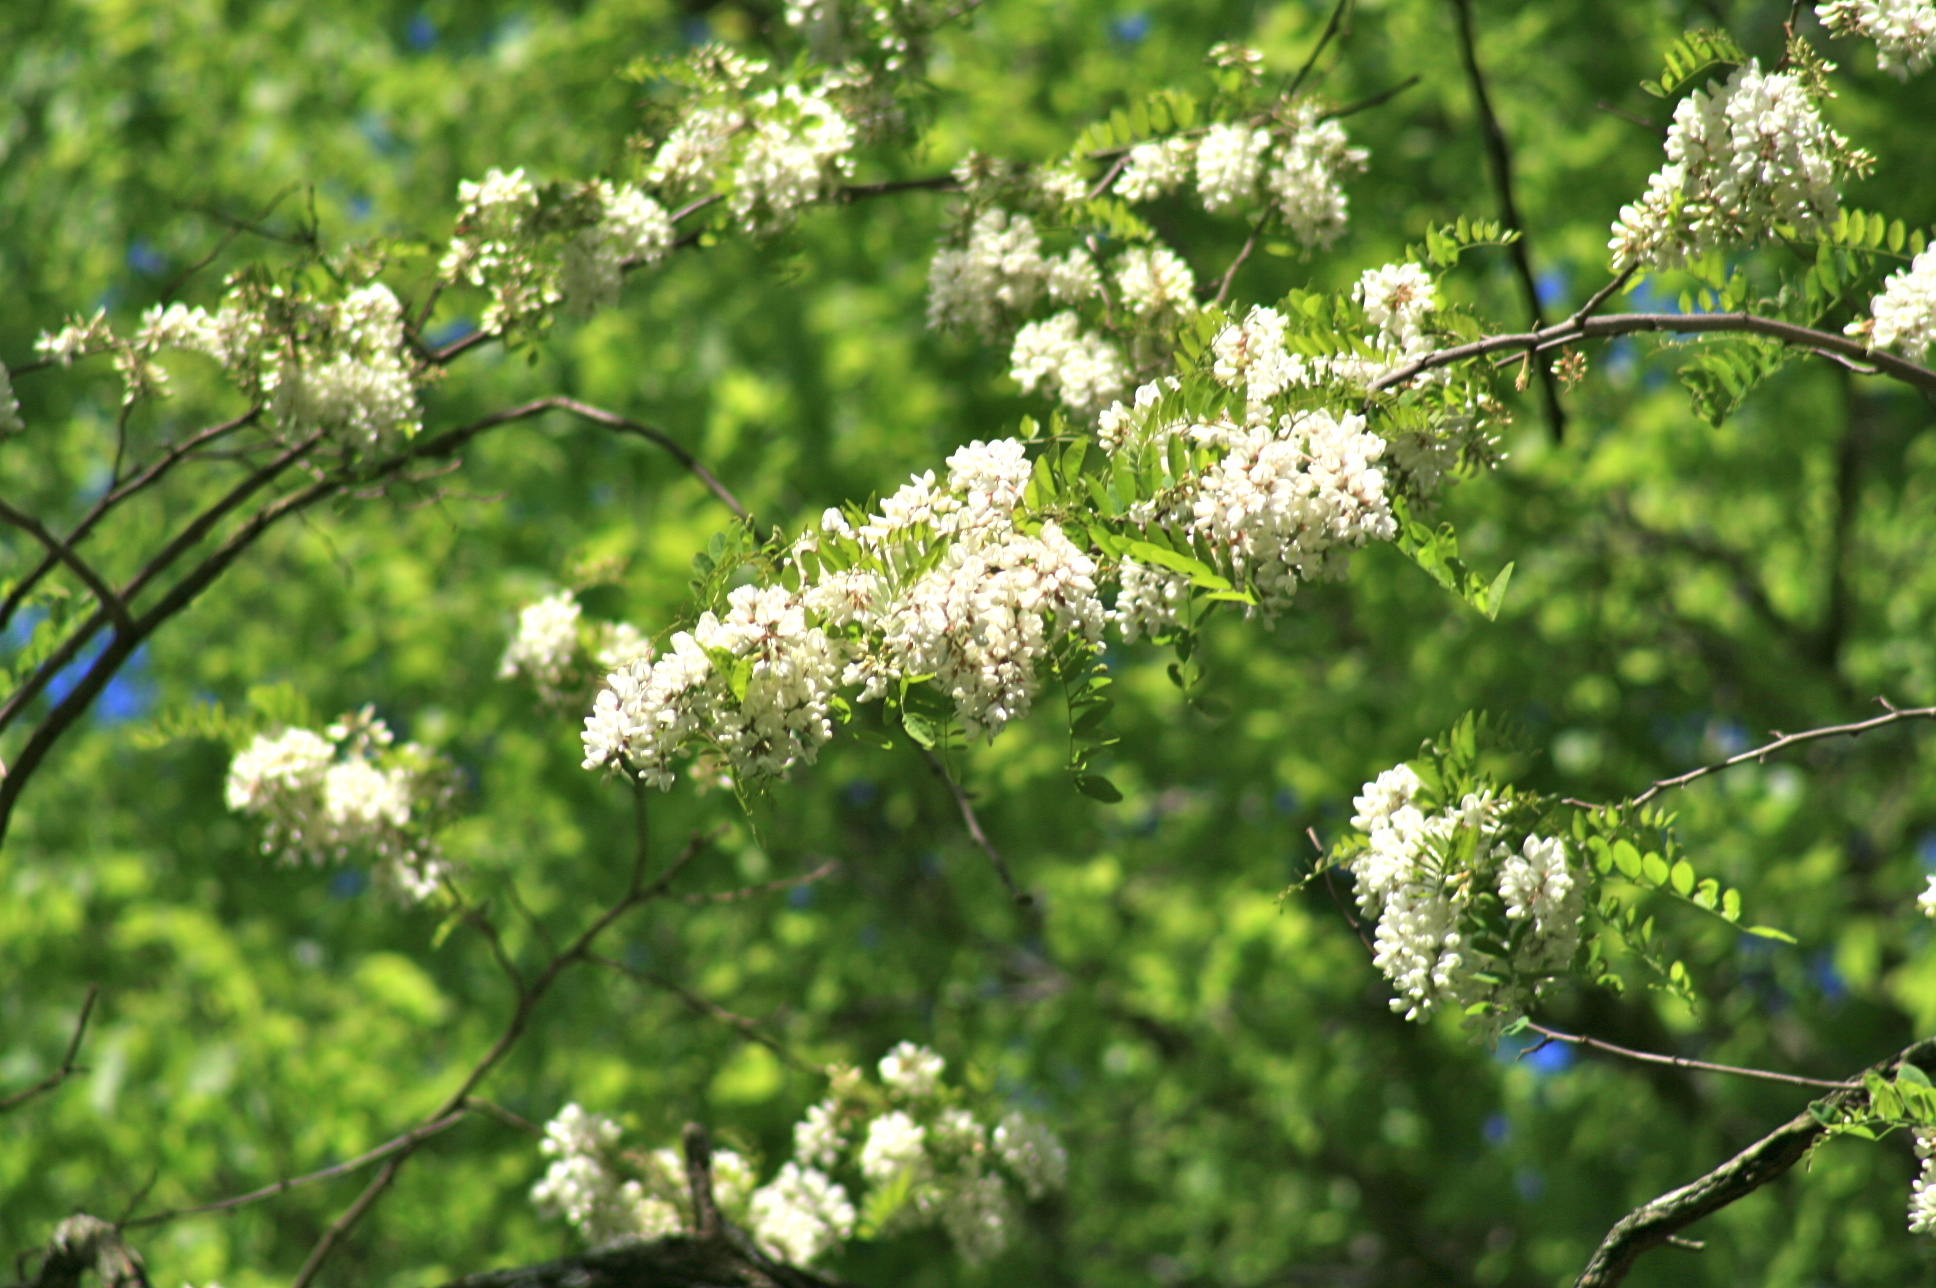 Black Locust Tree A Healthy Life For Me